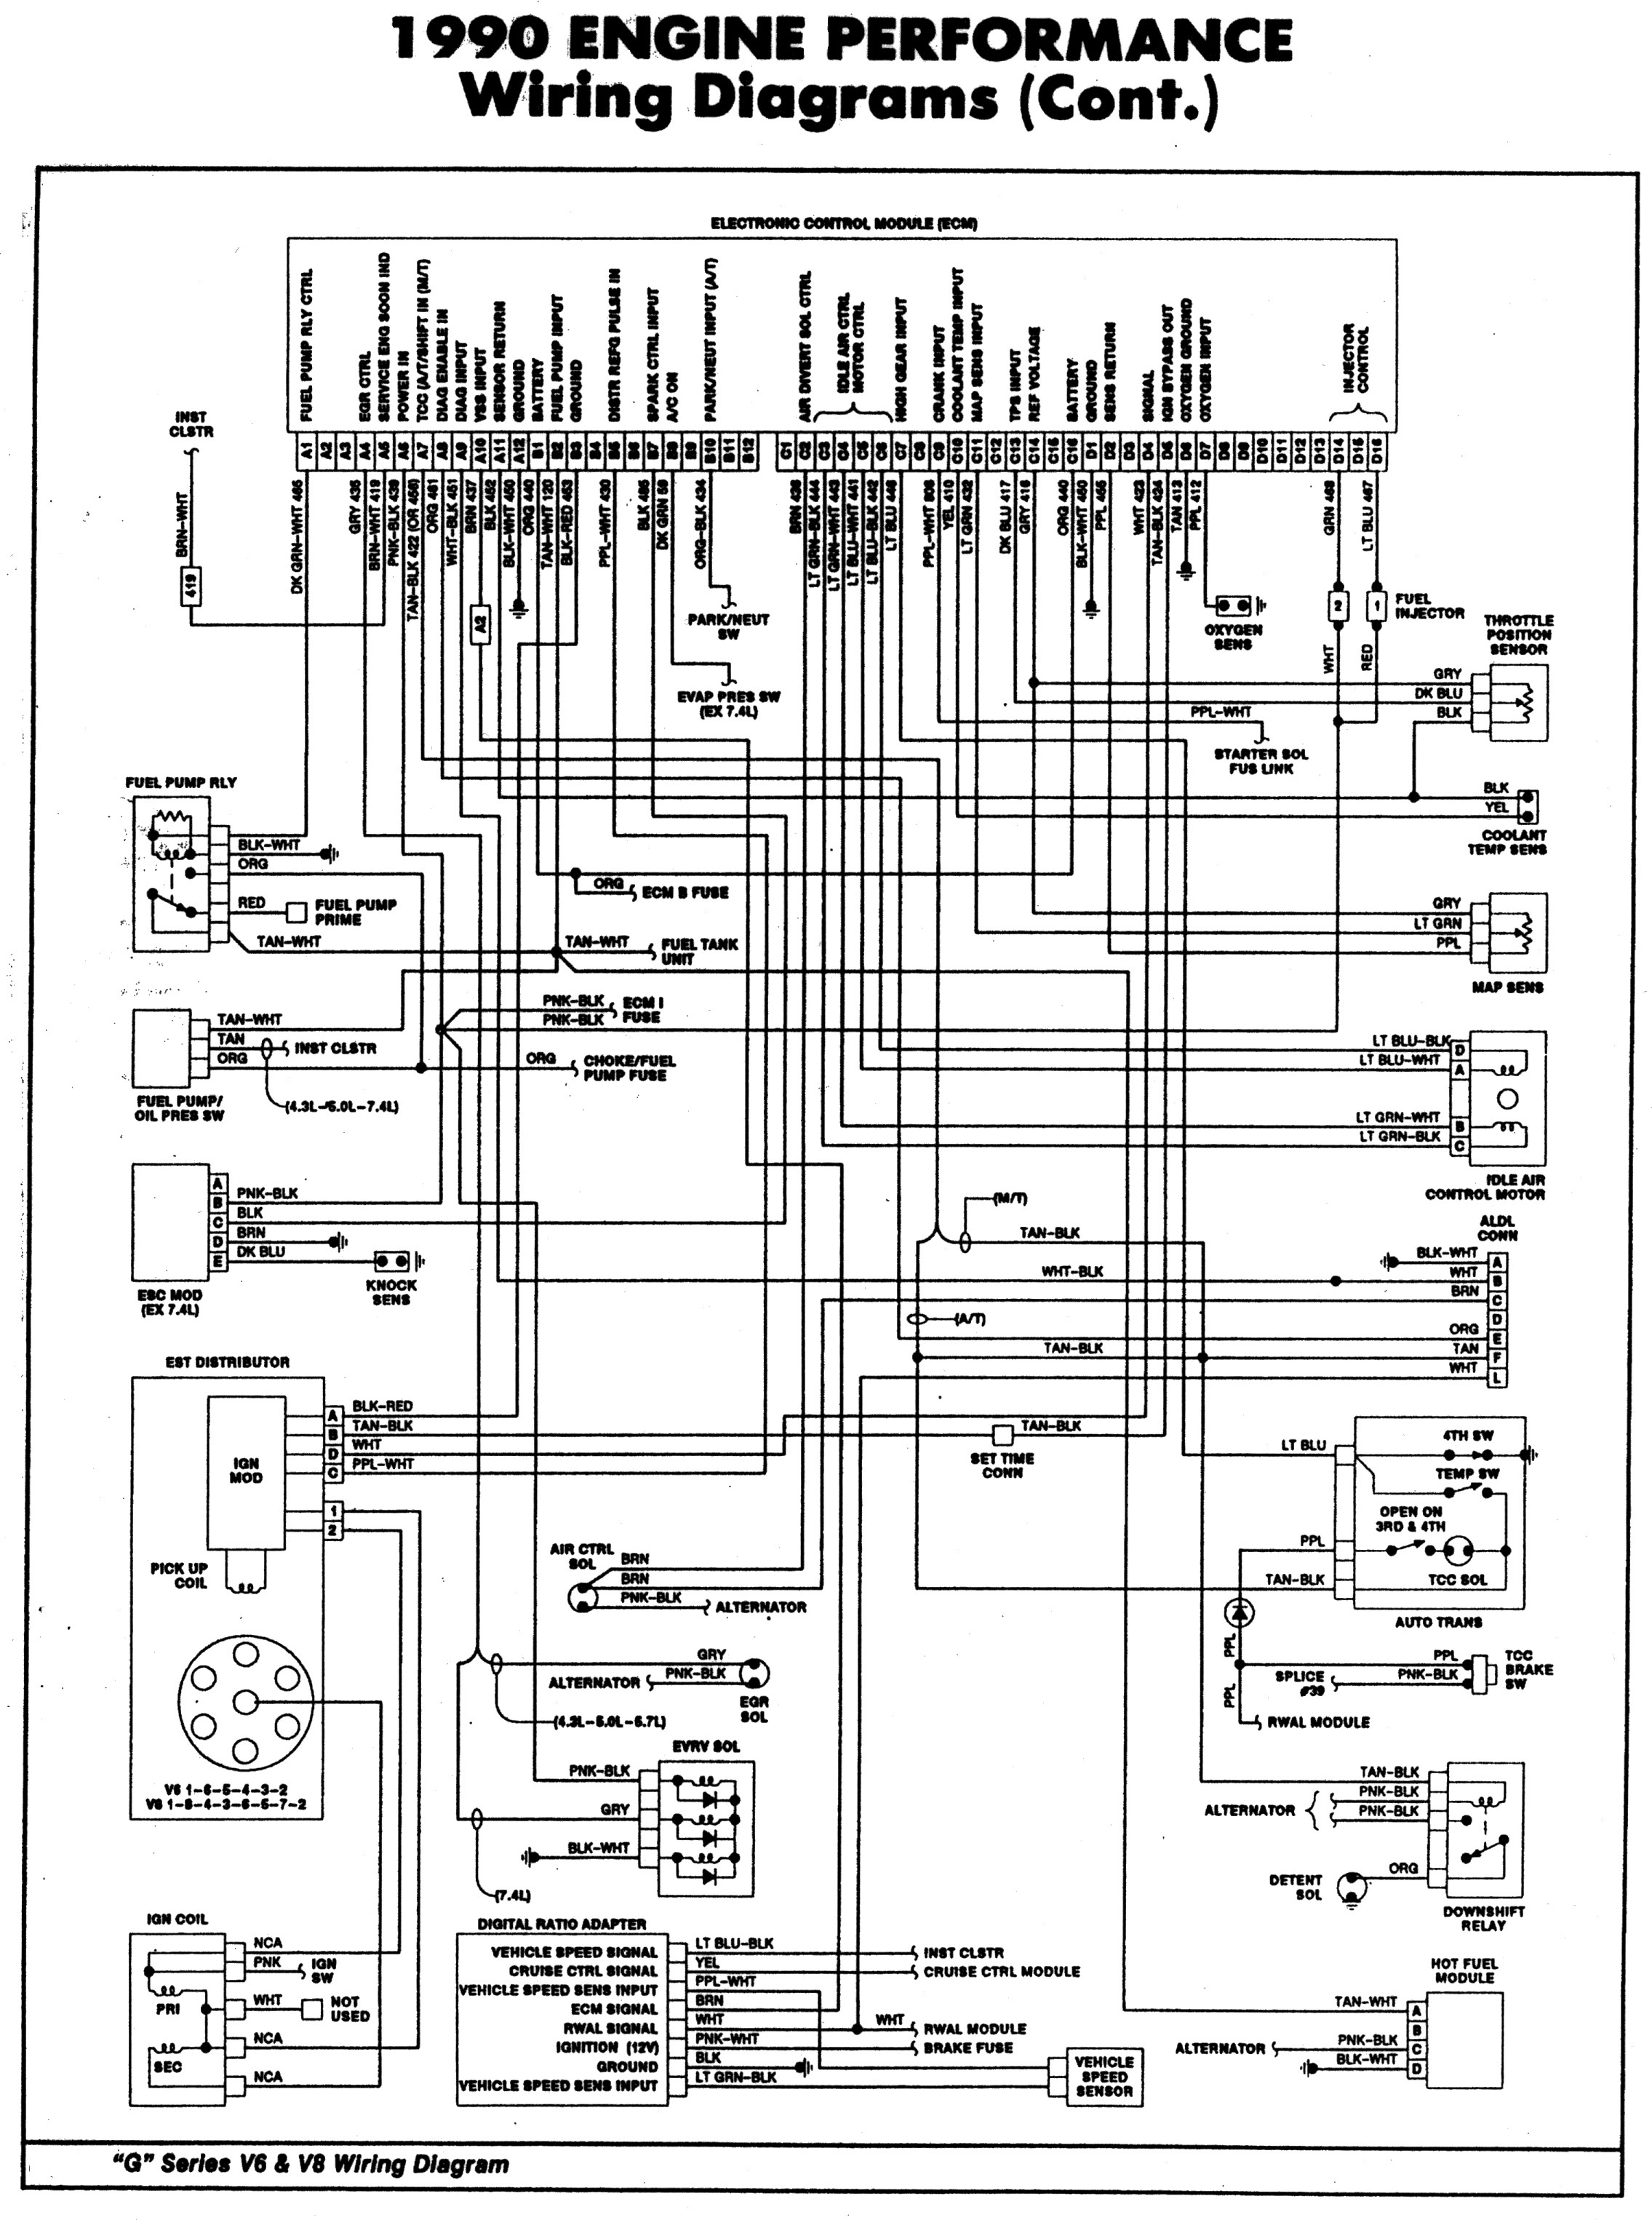 small resolution of ignitiondiagram 1990 chevy suburban tbi 350 installation land interior wiring diagram for 1990 suburban